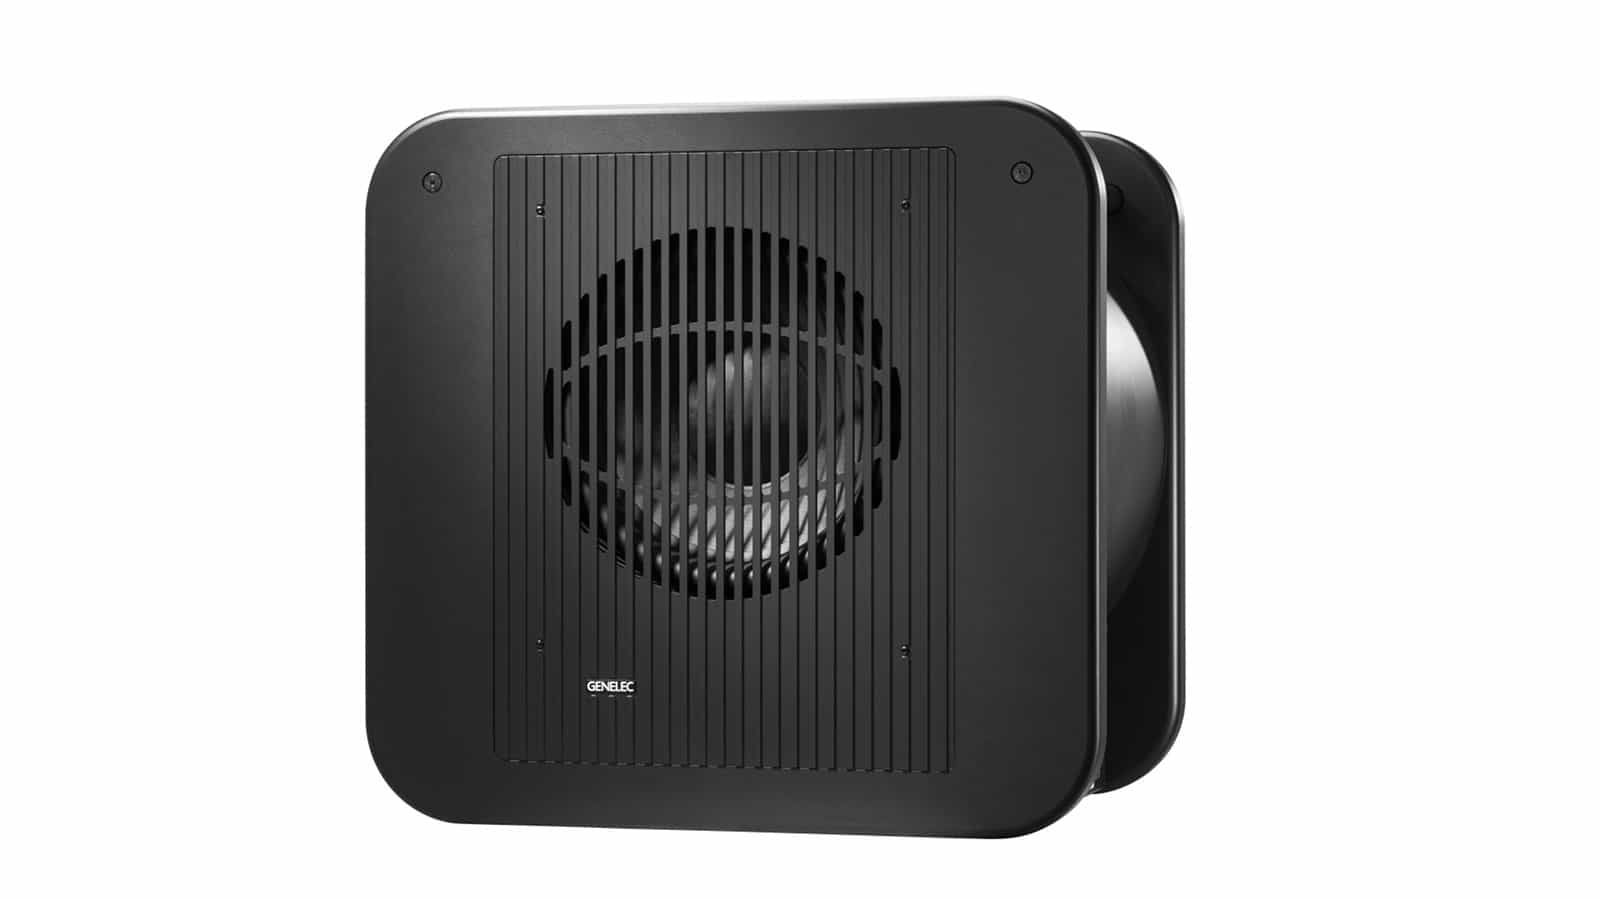 genelec-introduces-7380-sam-subwoofer